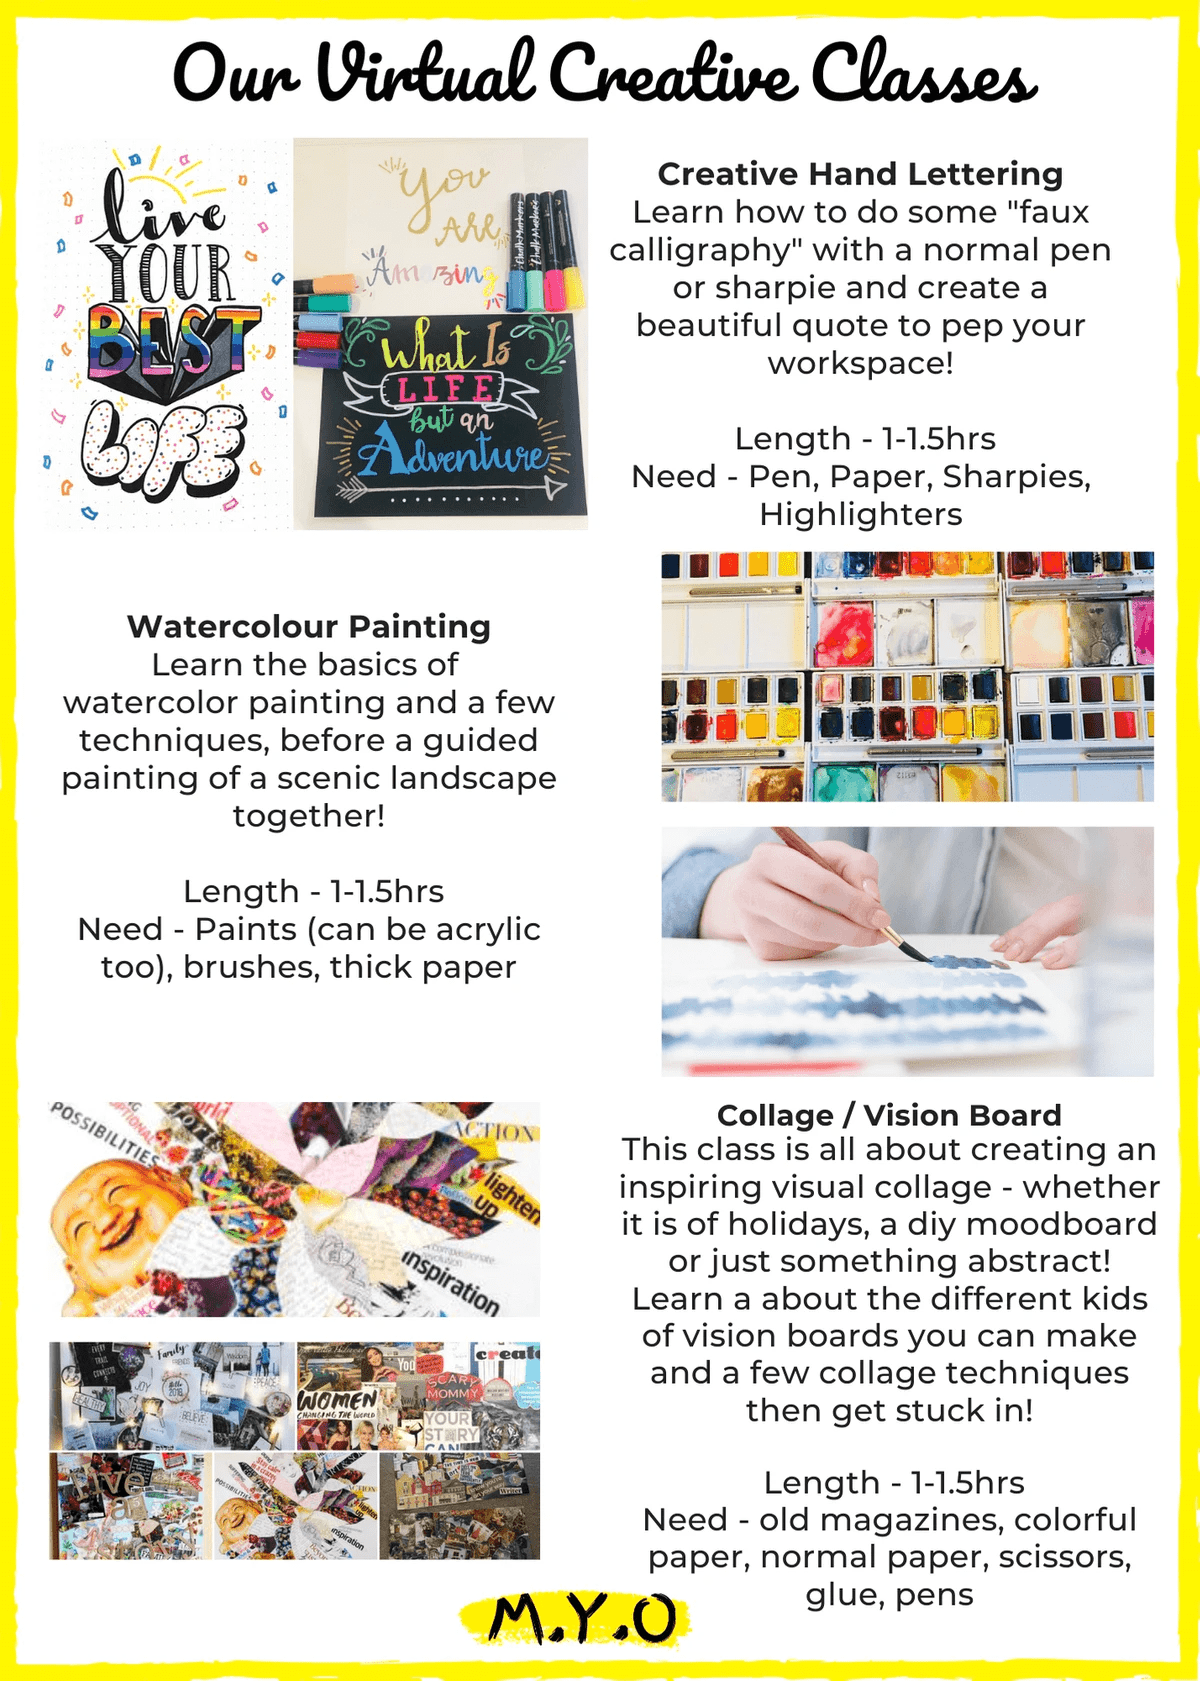 Online creative workshops with M.Y.O page 2 of flyer